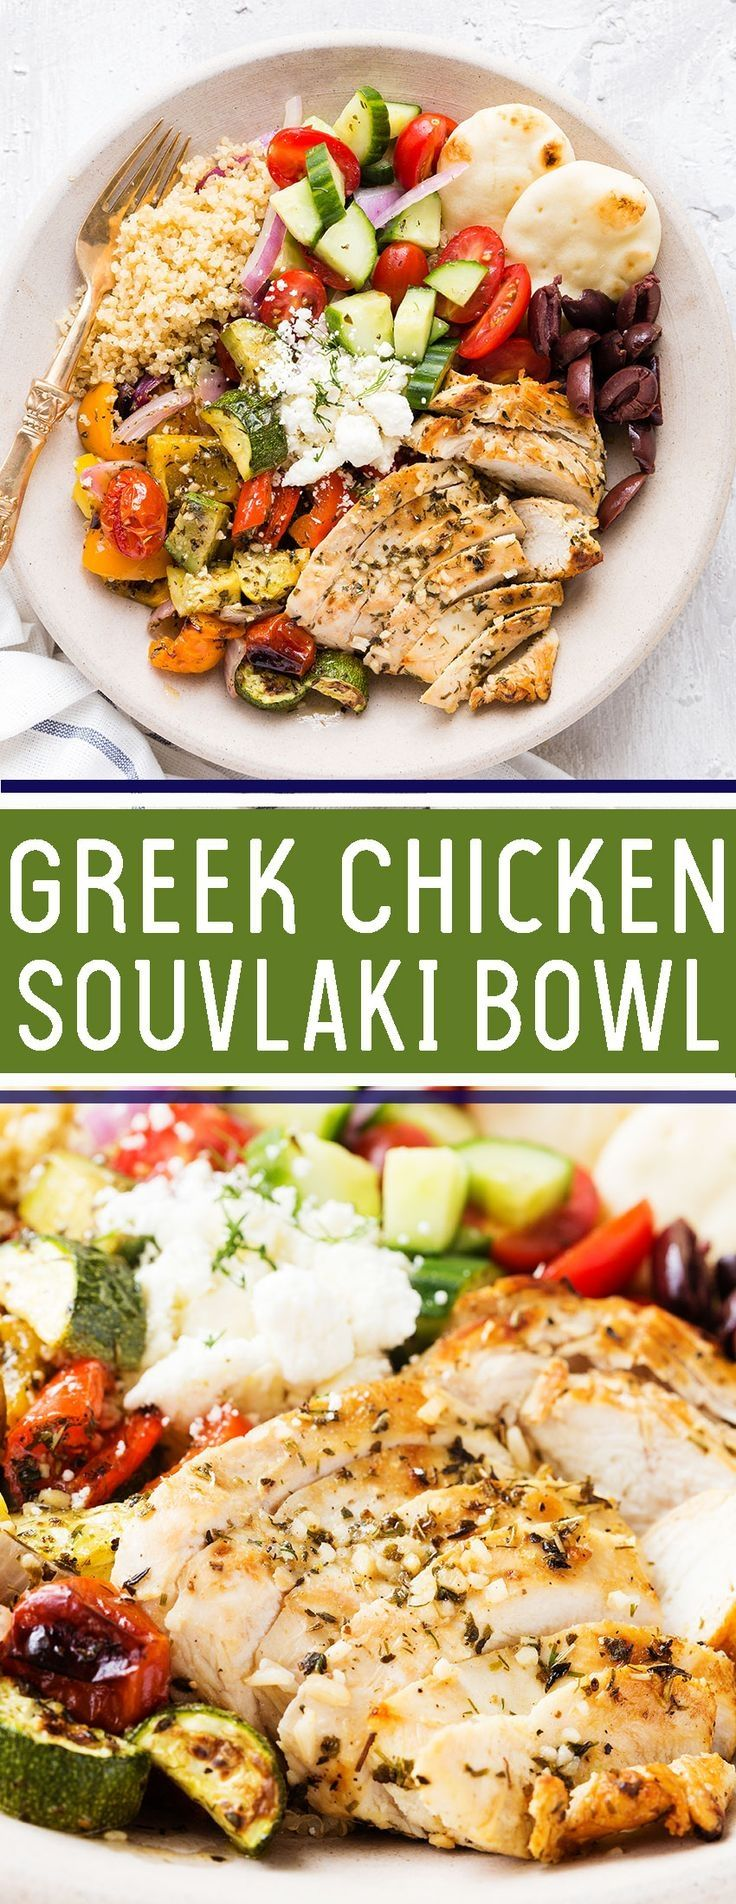 Grilled Chicken For Tacos, Burritos, or Salads